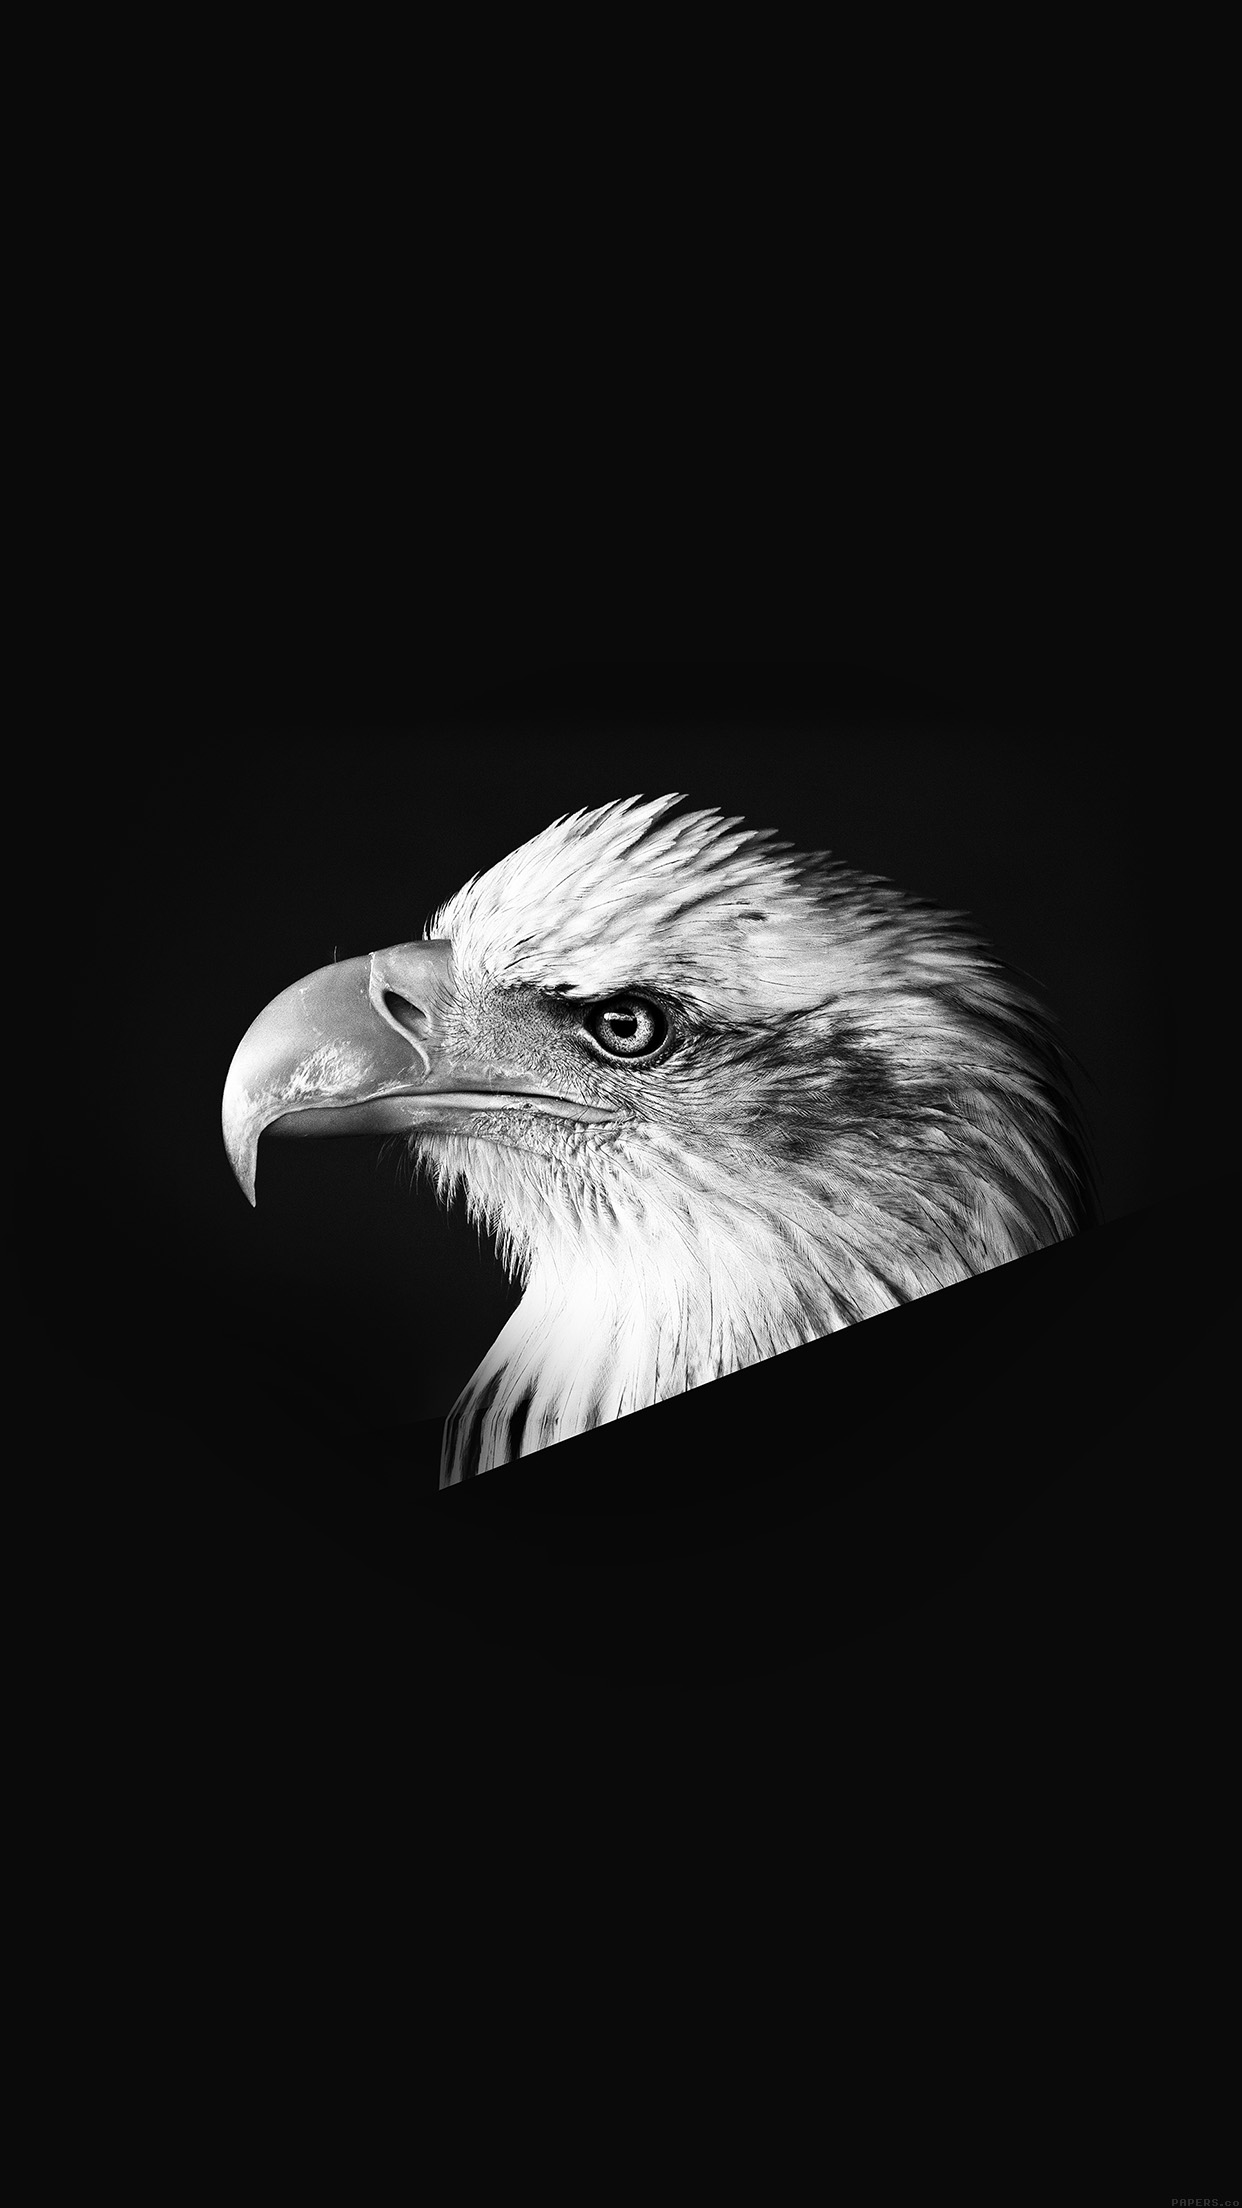 Iphone7paperscom Iphone7 Wallpaper Mr65 Eagle Dark